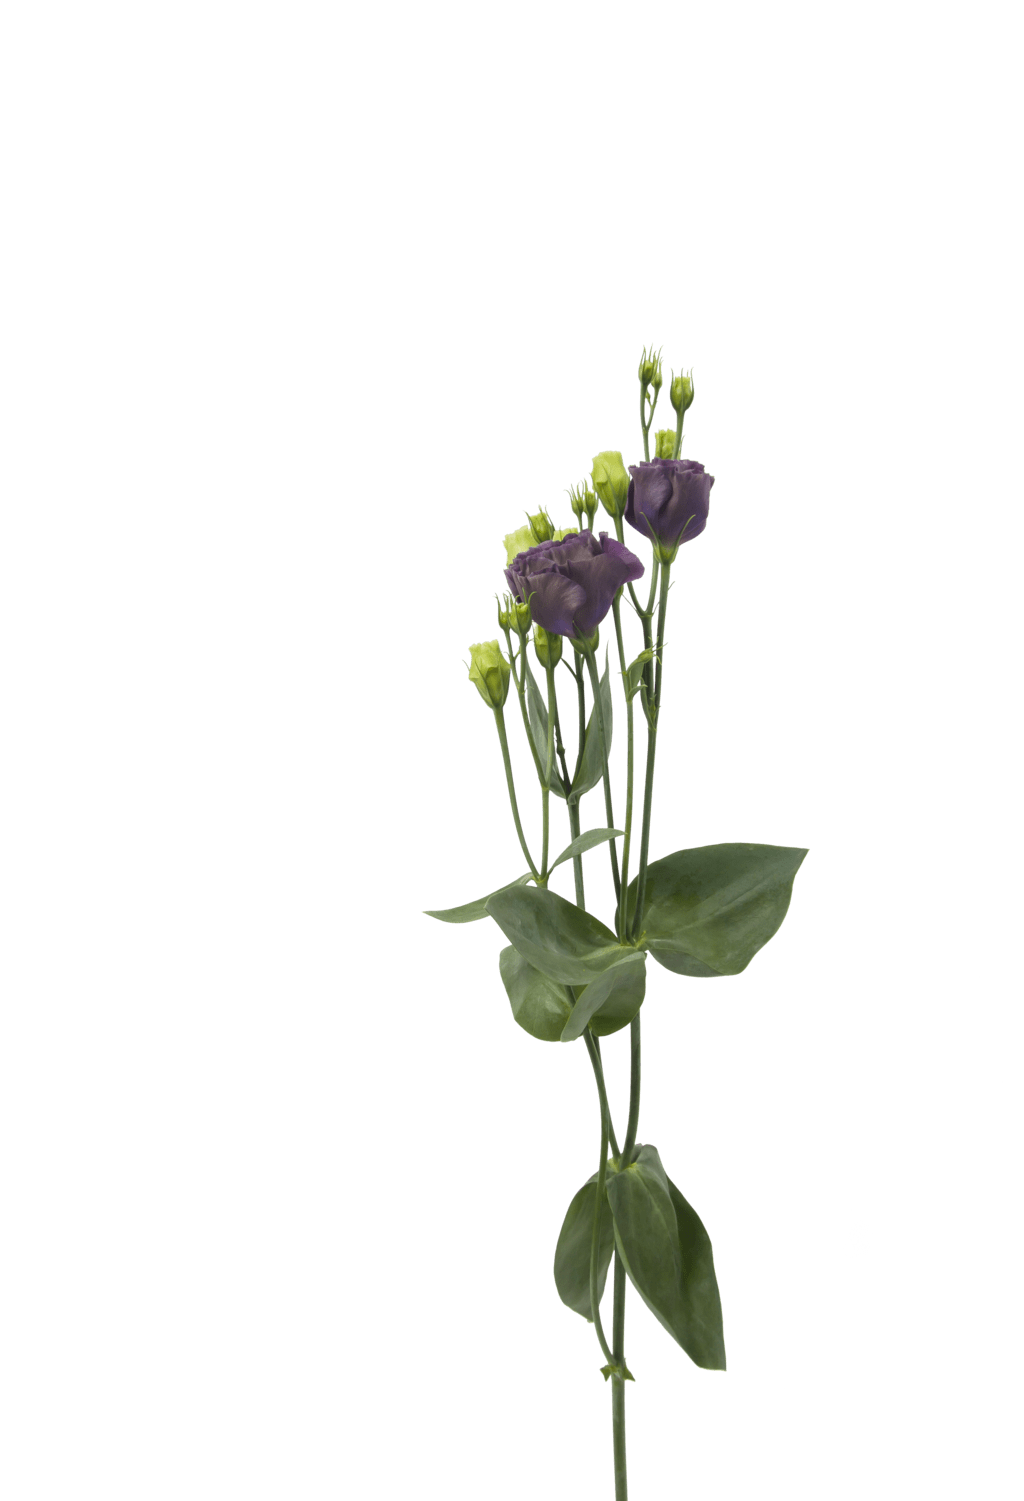 Ranunculus drawing lisianthus. Our top favorite fall